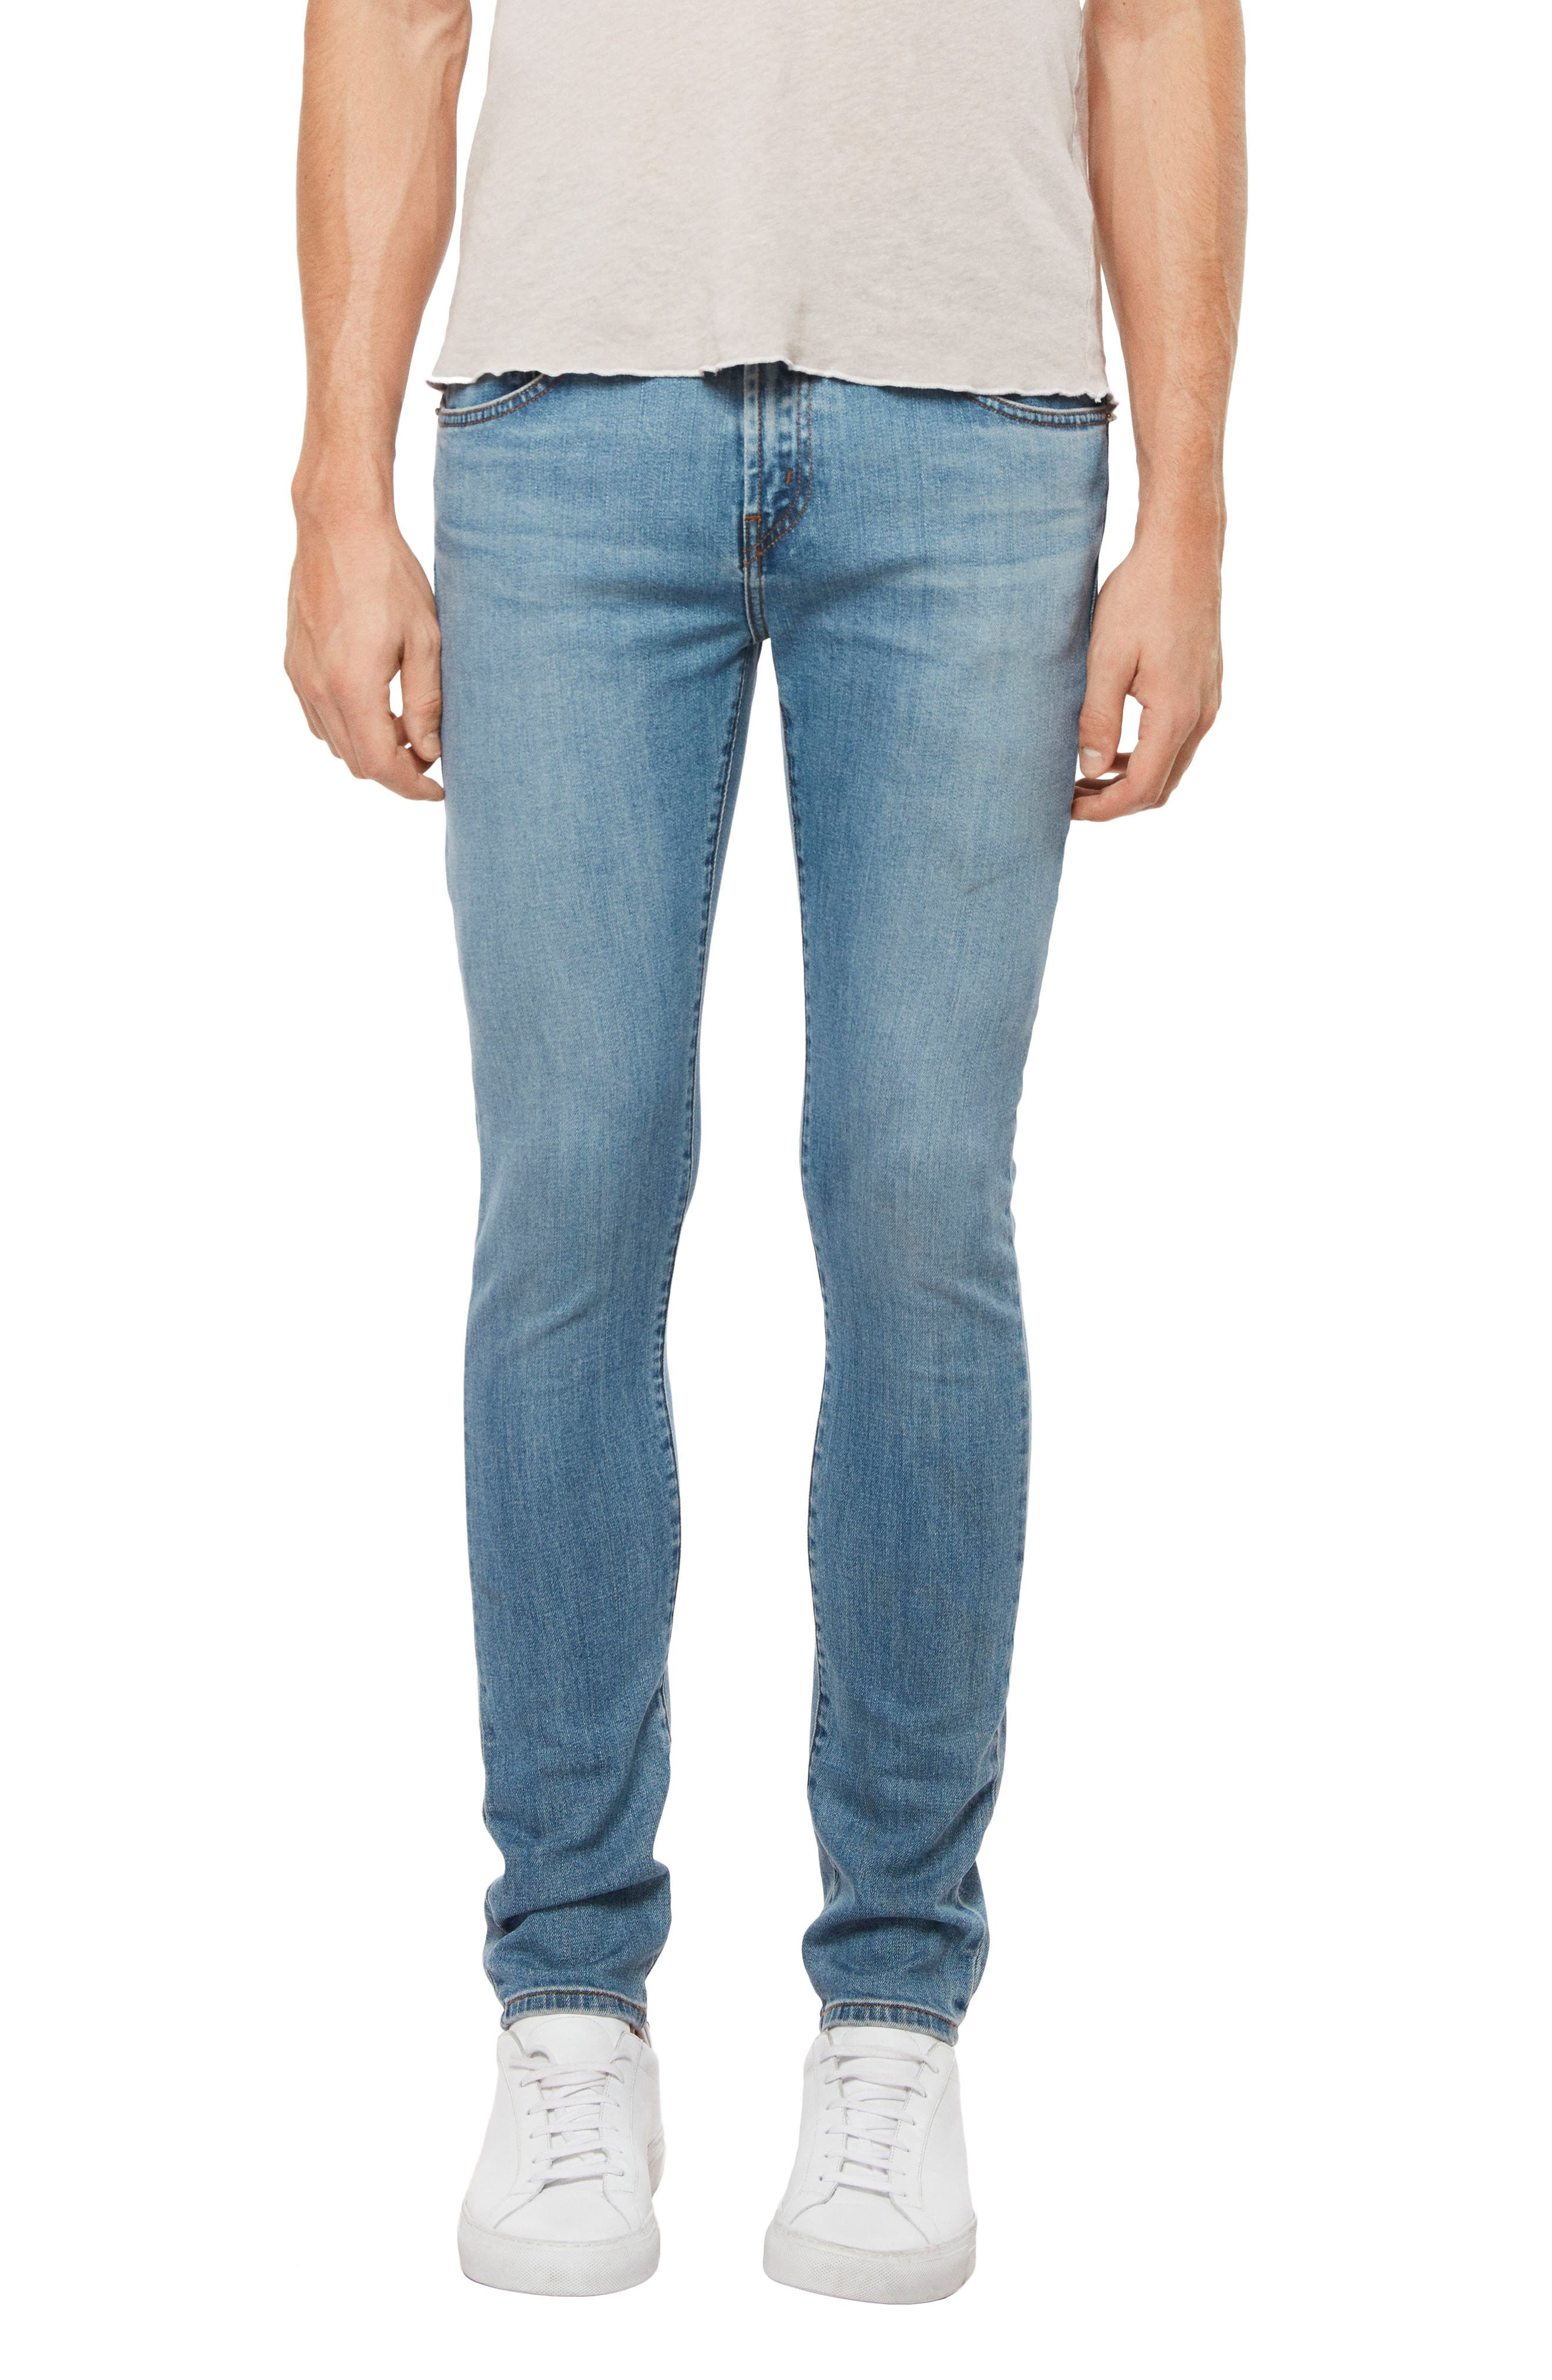 Skinny Fit Jeans,                             Main thumbnail 1, color,                             409